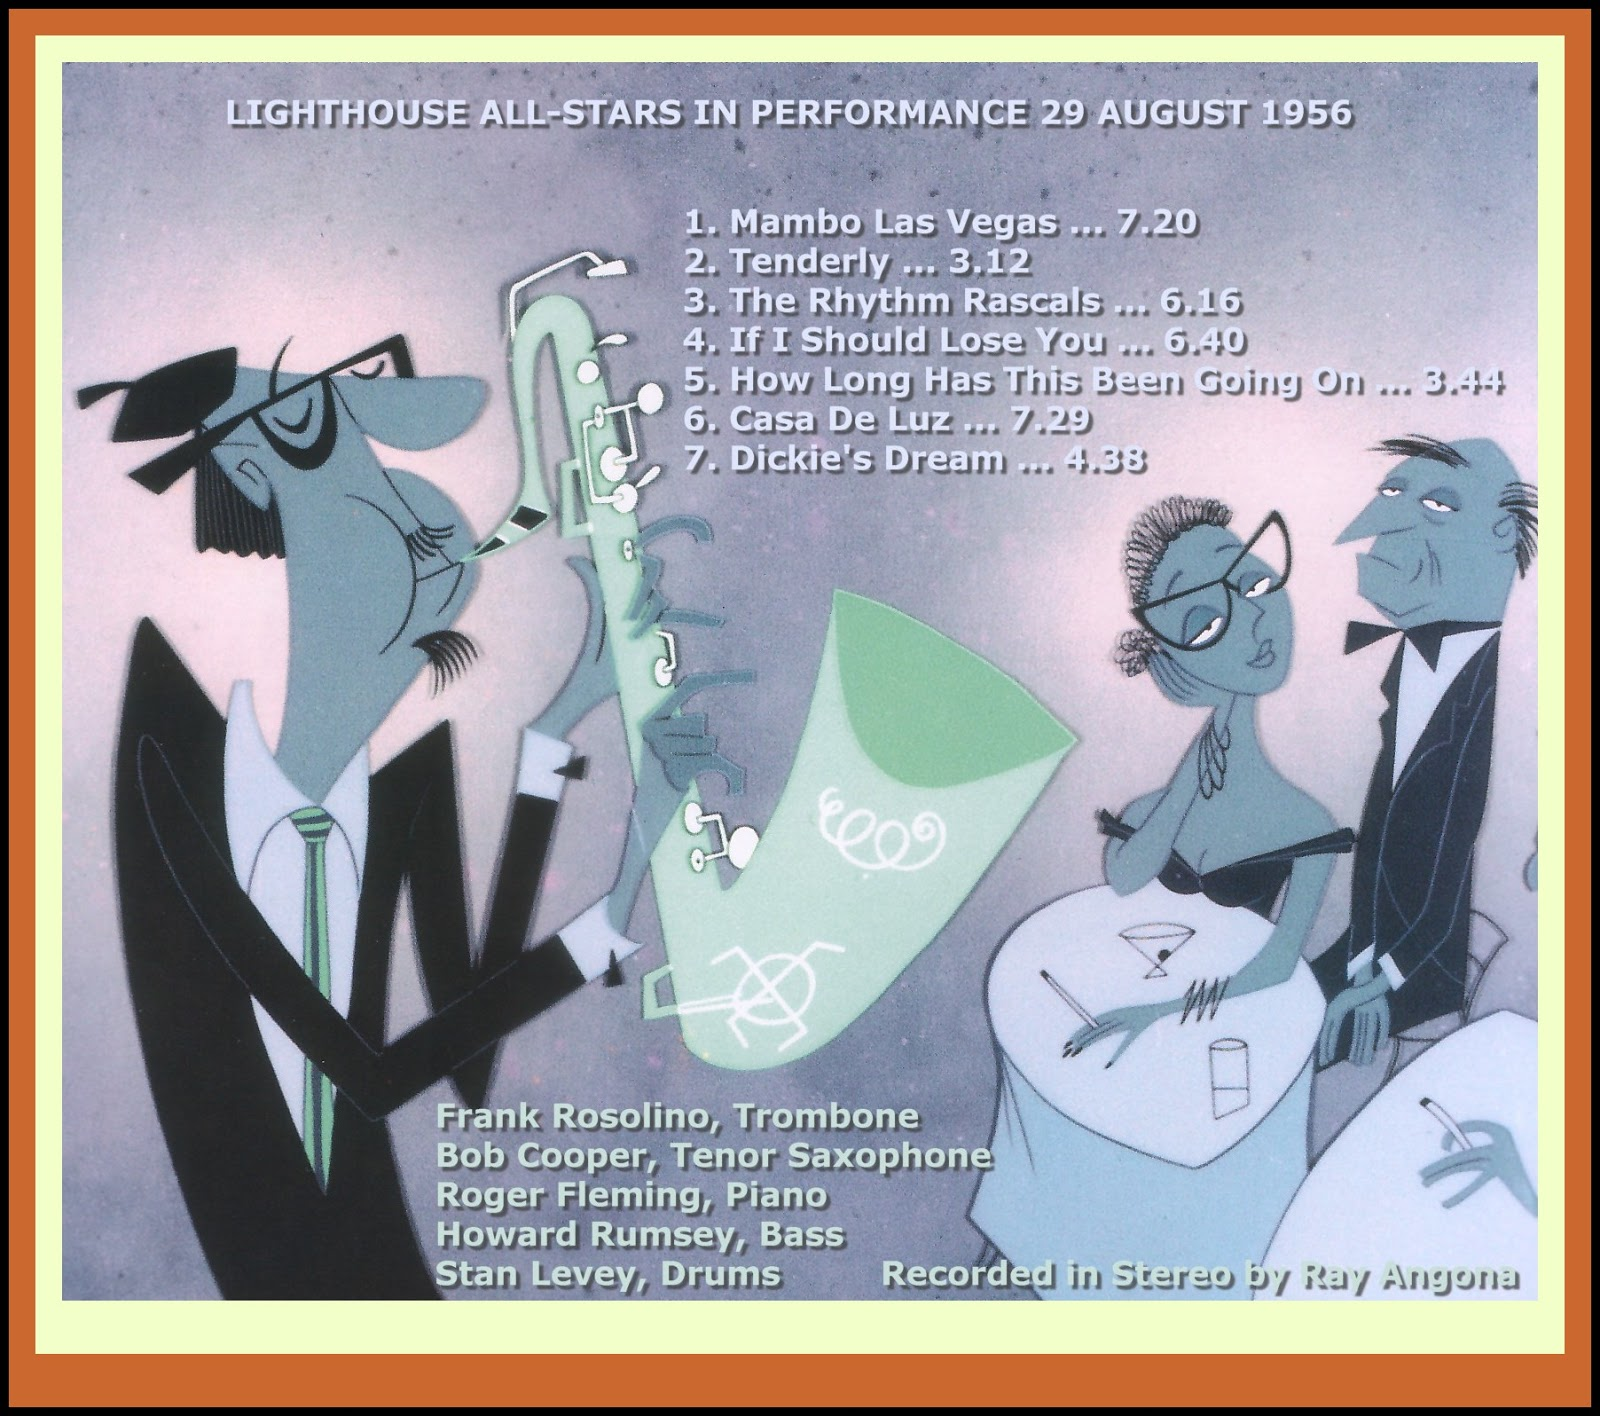 Jazz Profiles The Lighthouse All Stars In Performance 29 August 1956